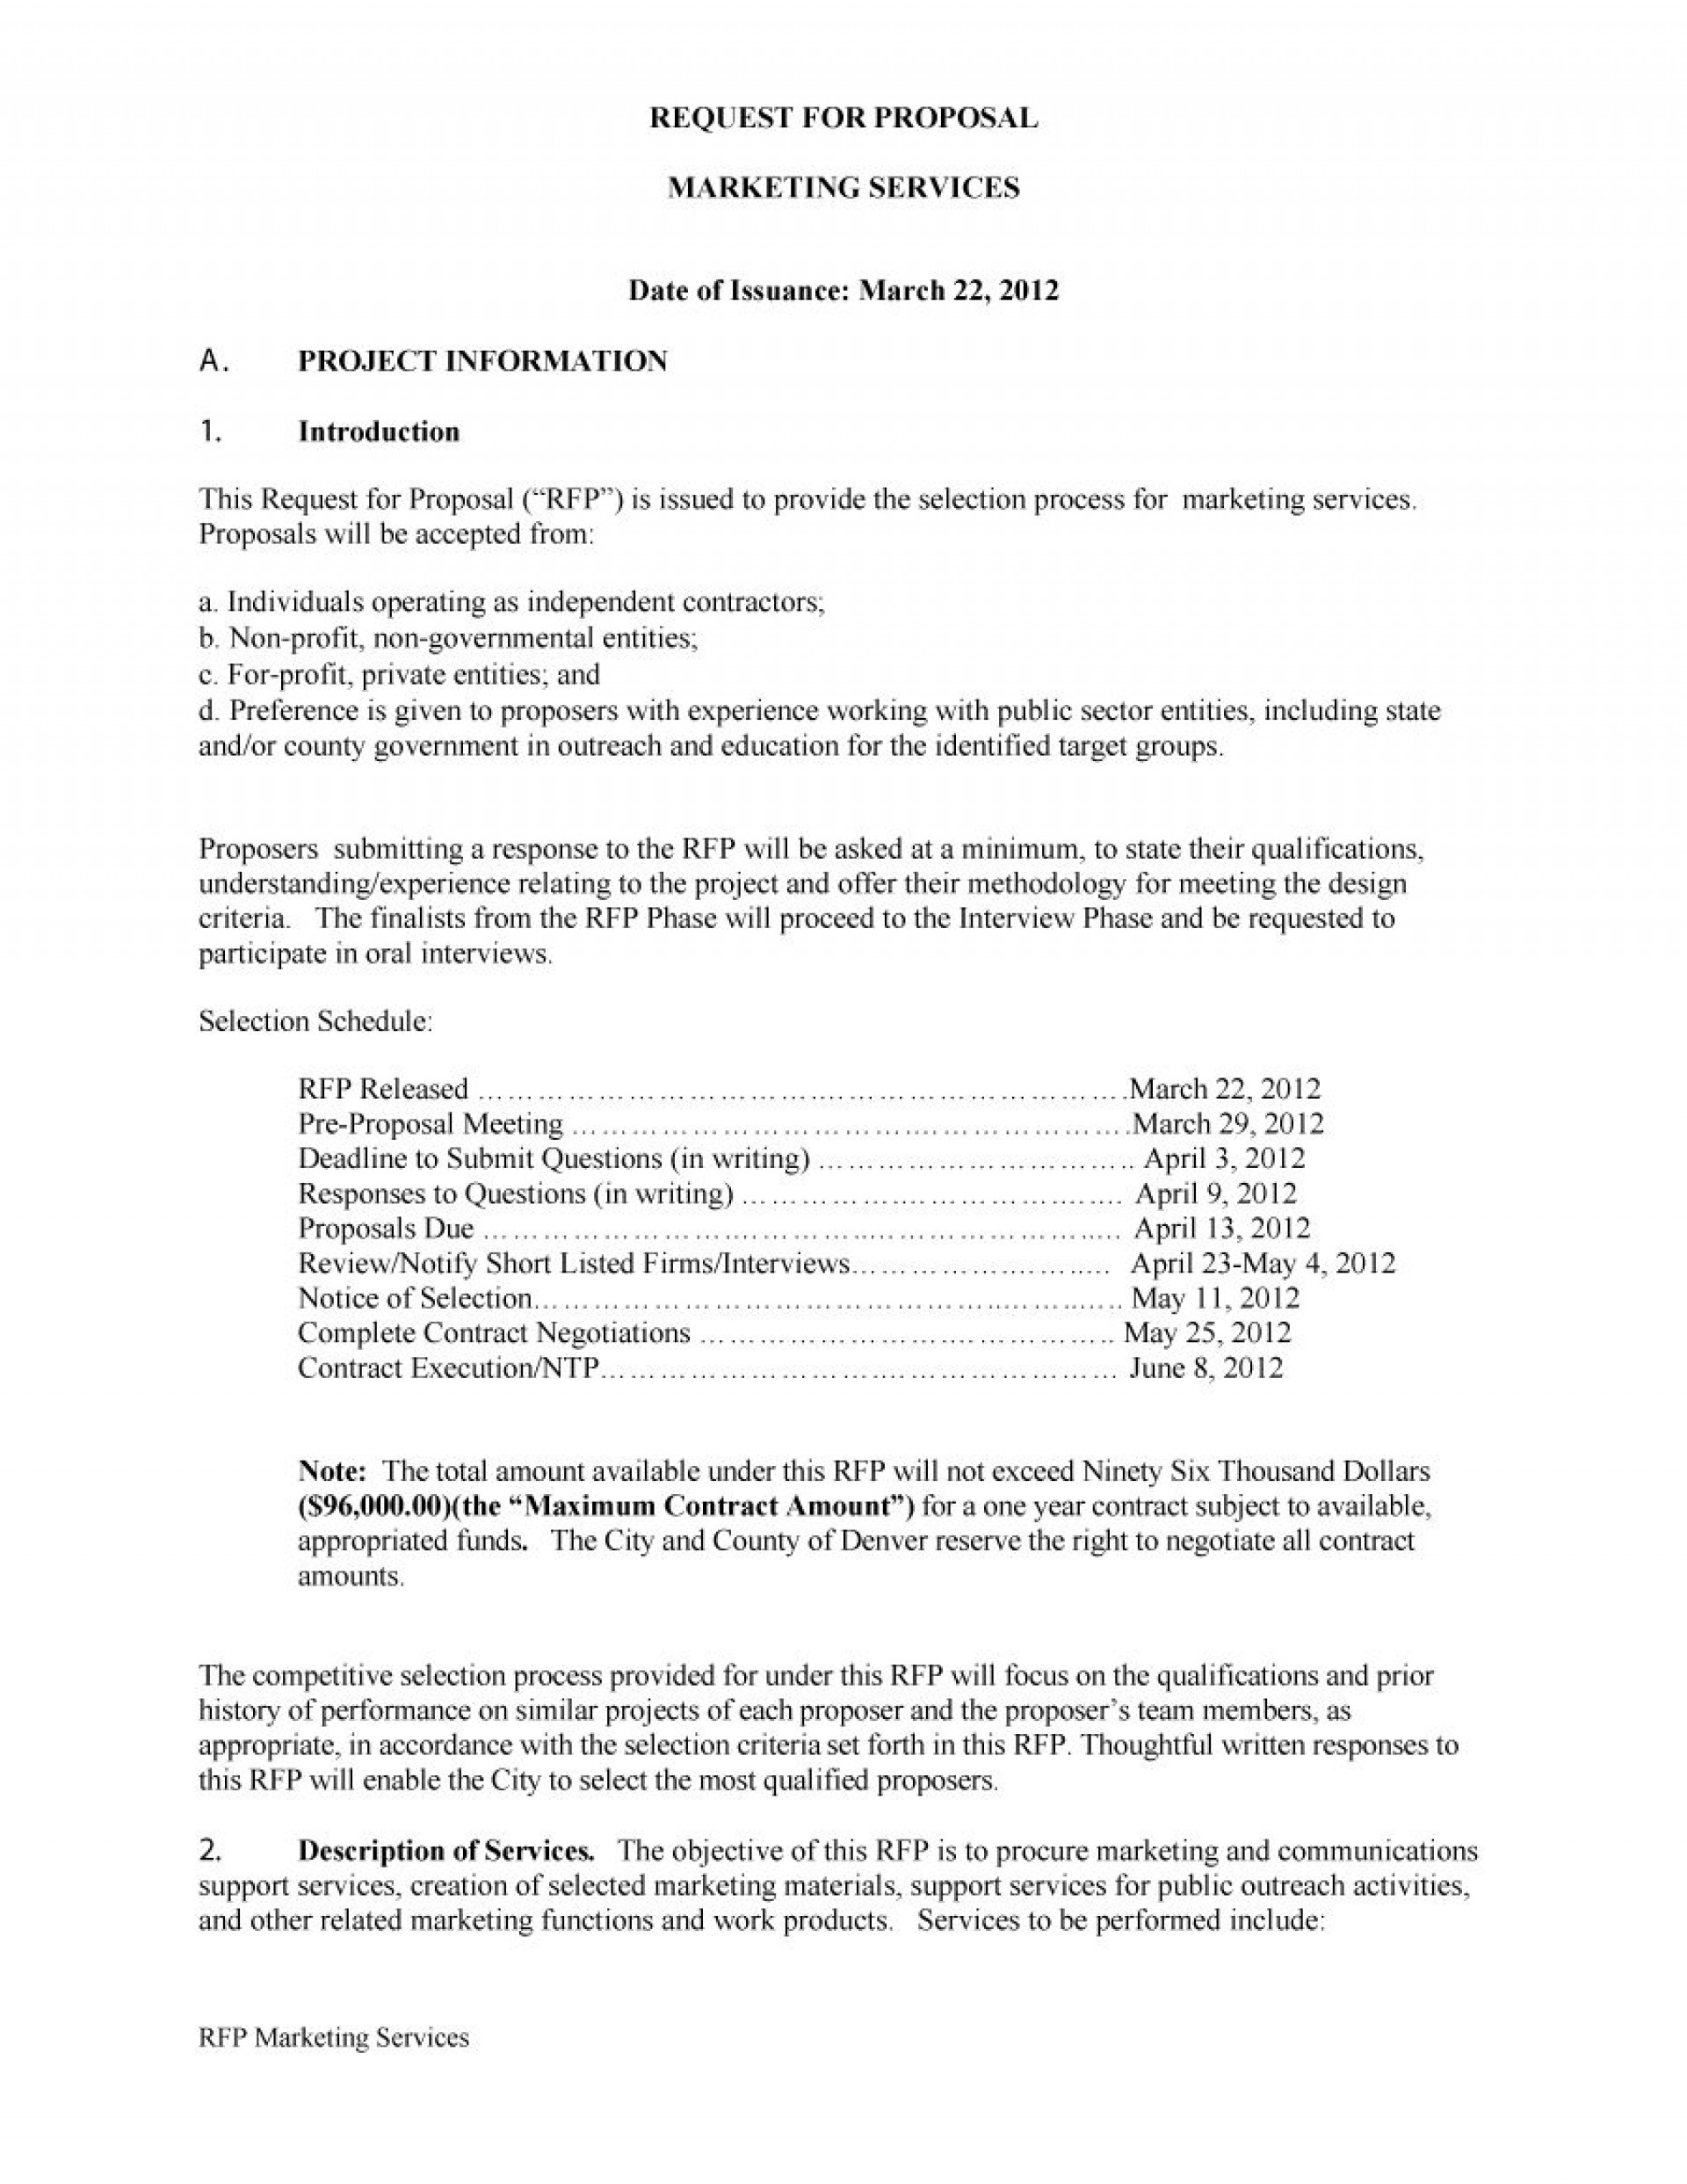 007 Marvelou Request For Proposal Template Construction Image  Rfp Residential1920